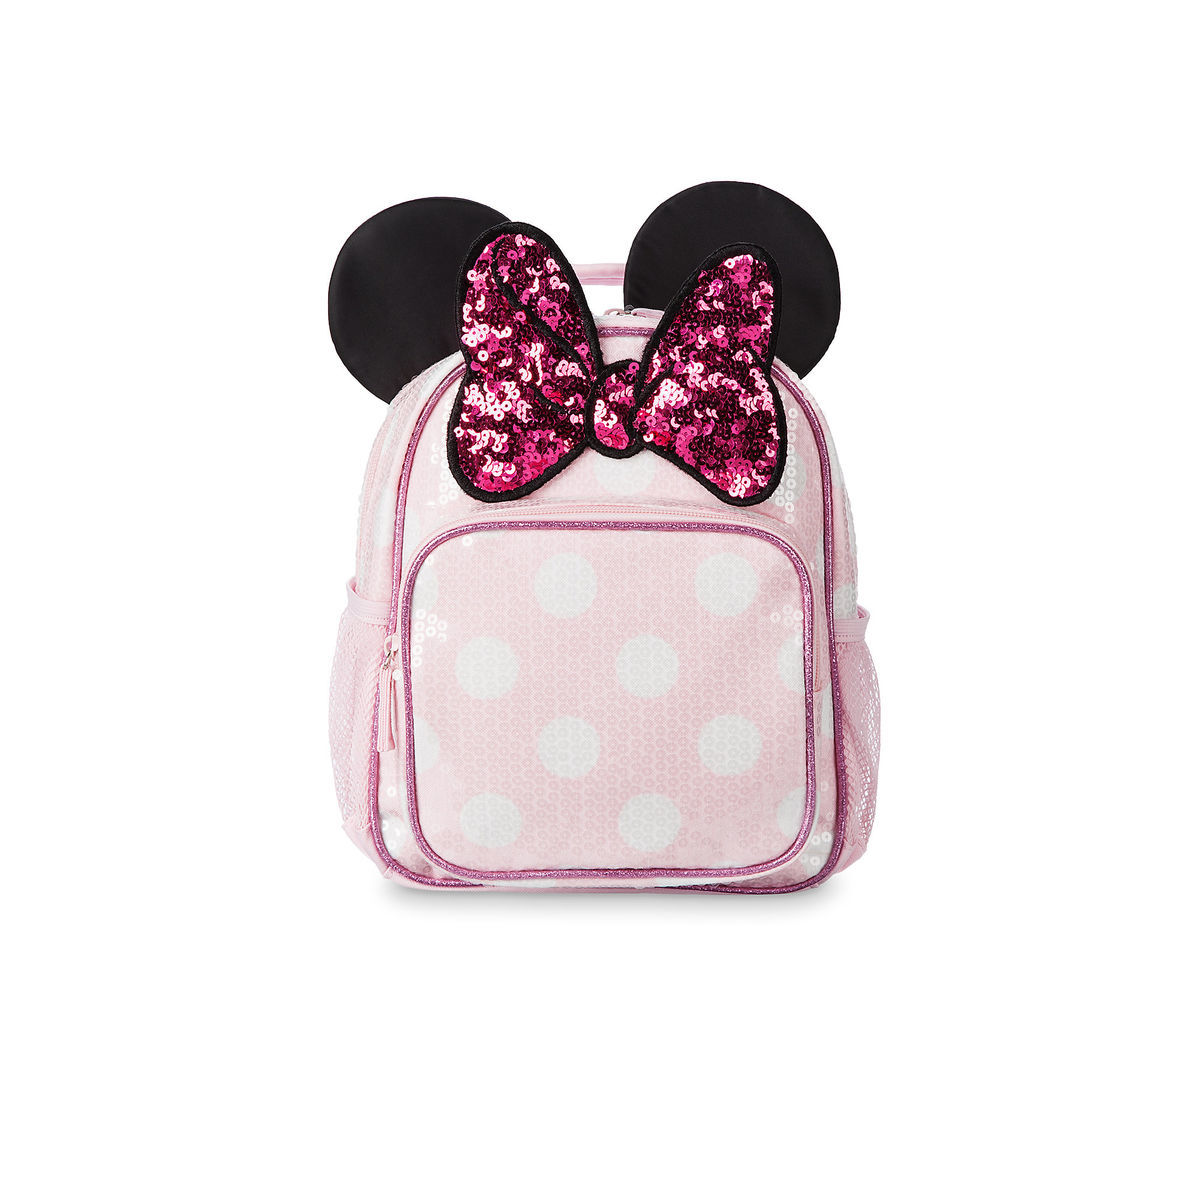 71eec6b90766 Product Image of Minnie Mouse Mini Backpack for Kids - Personalized   1